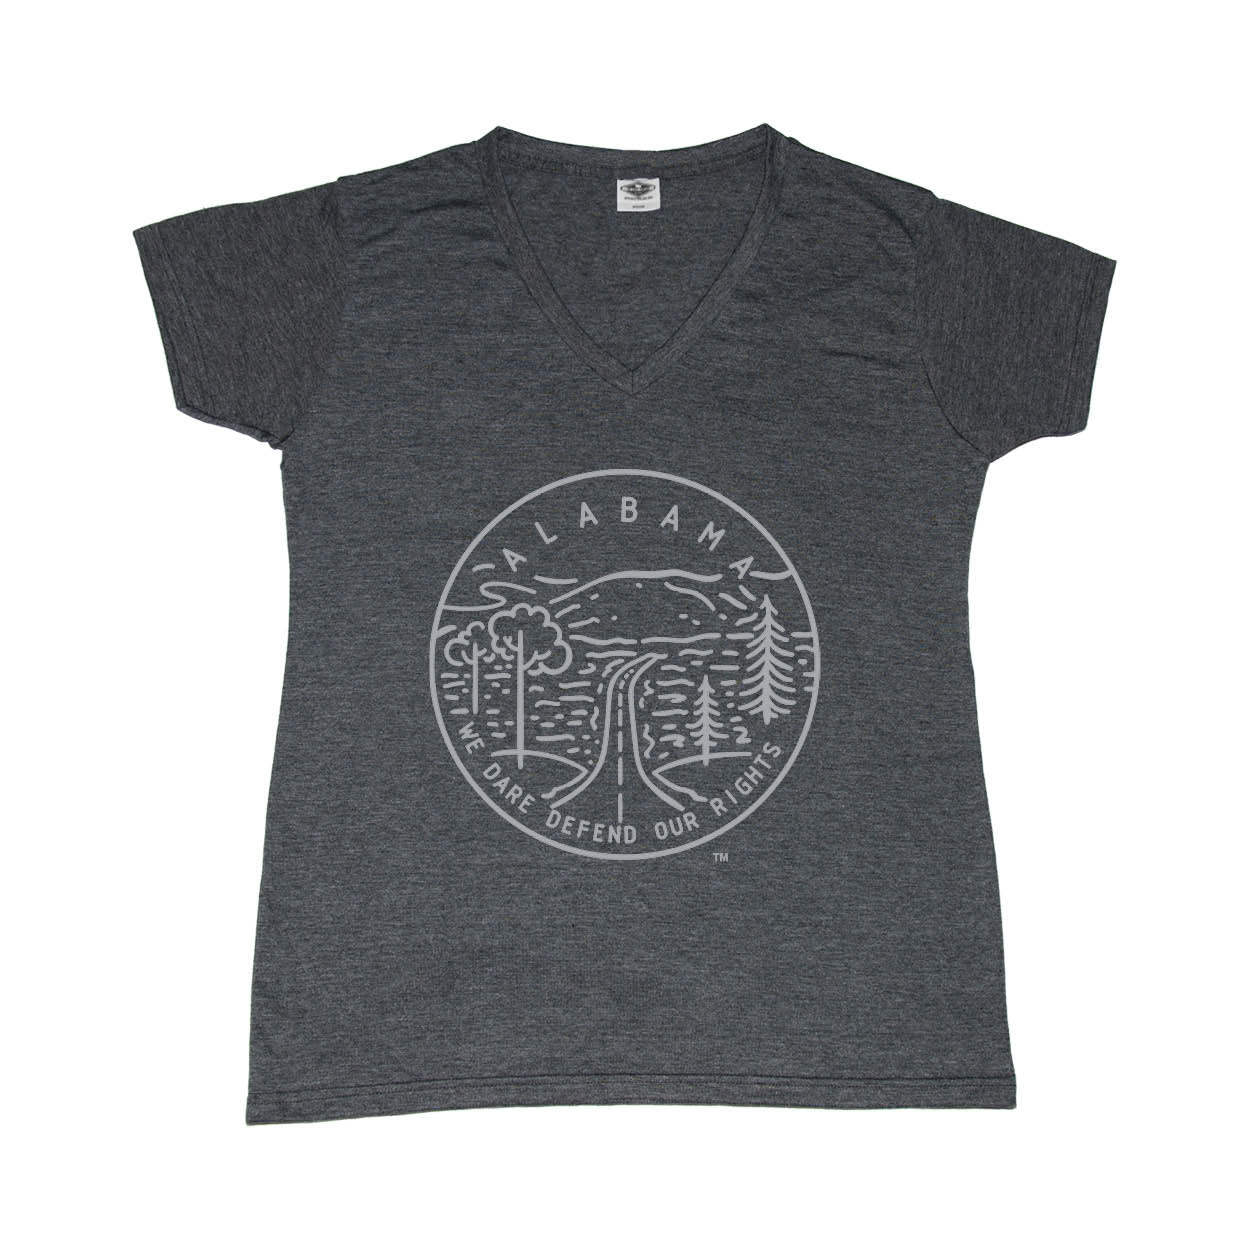 ALABAMA LADIES' V-NECK | STATE SEAL |  WE DARE DEFEND OUR RIGHTS